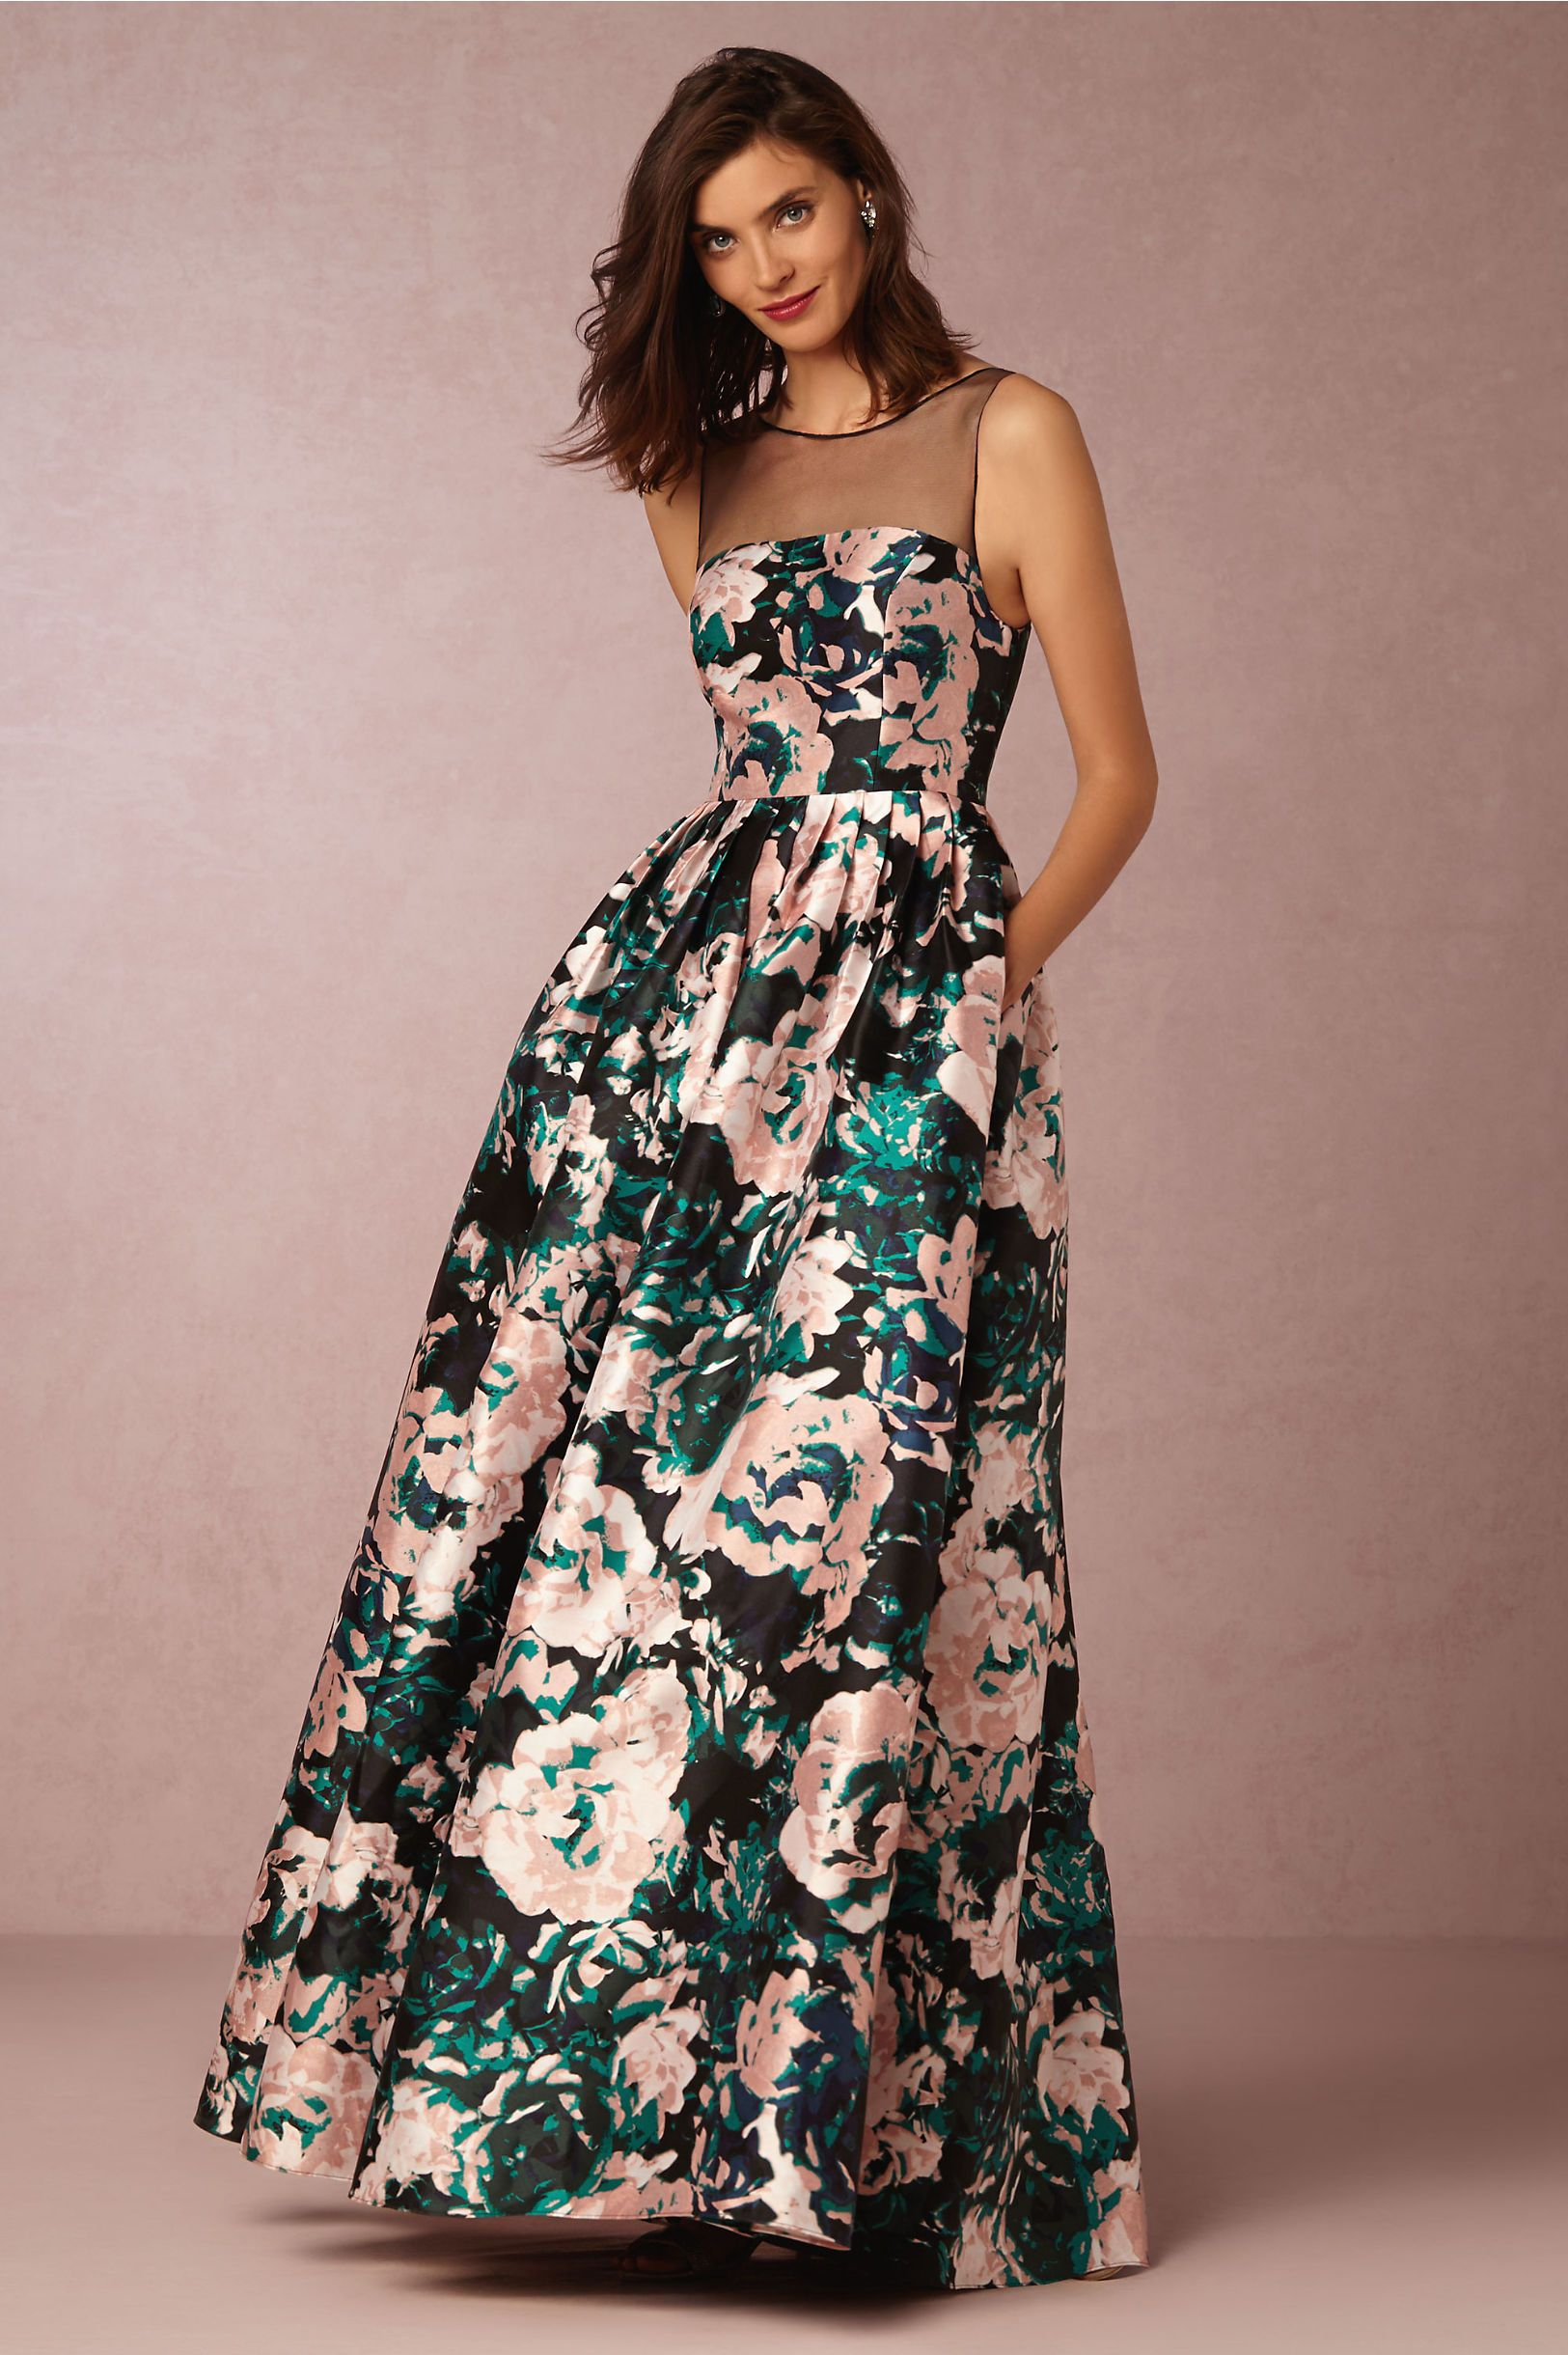 338094cbe6e54 floral black tie dress | Cora Ball Gown from BHLDN | Holiday Parties ...